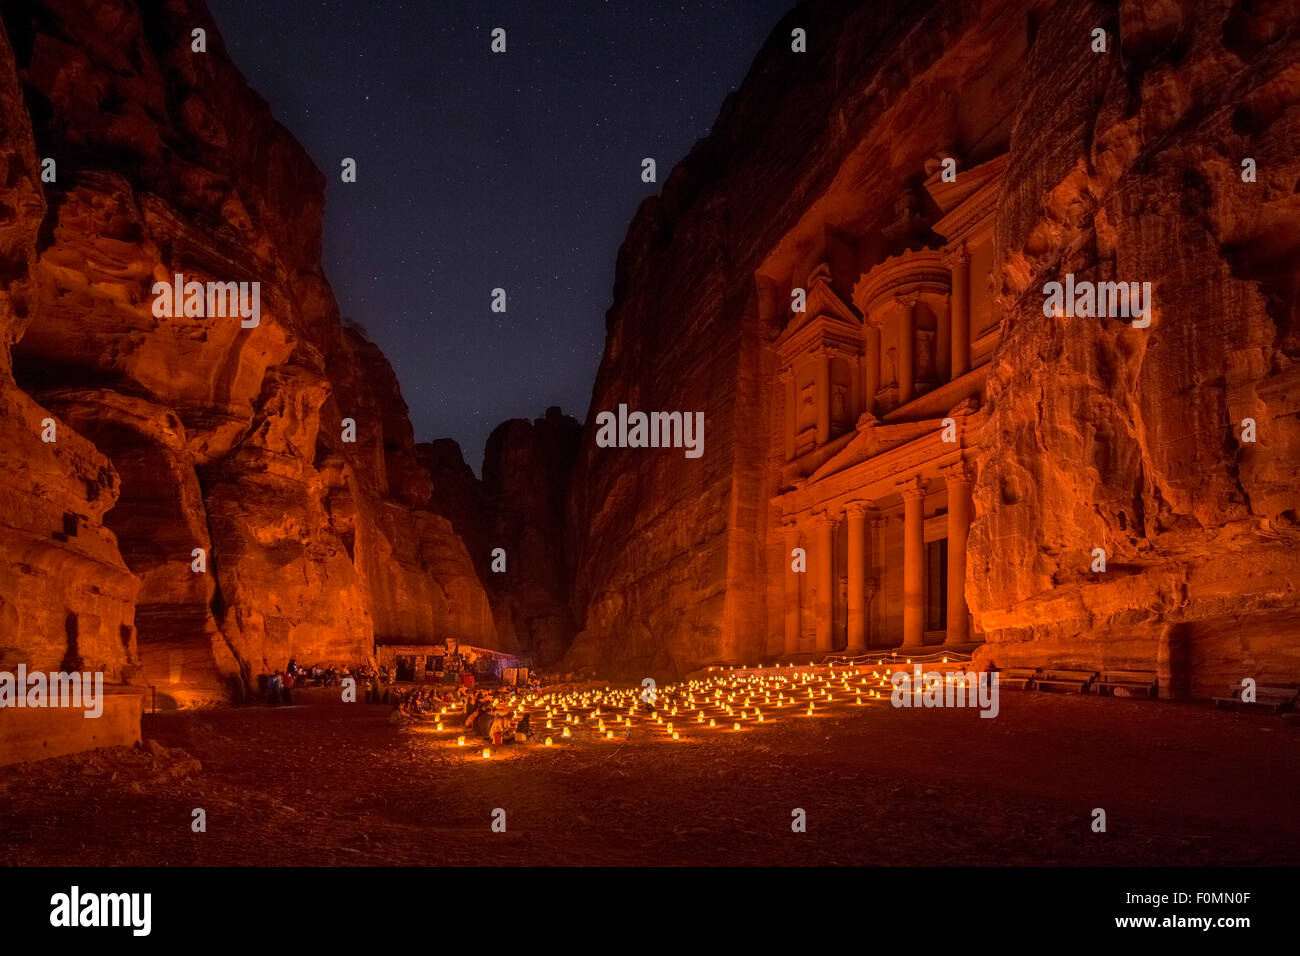 al-Khaznah or the Treasury at night time candlelight visit, Petra, Jordan. - Stock Image